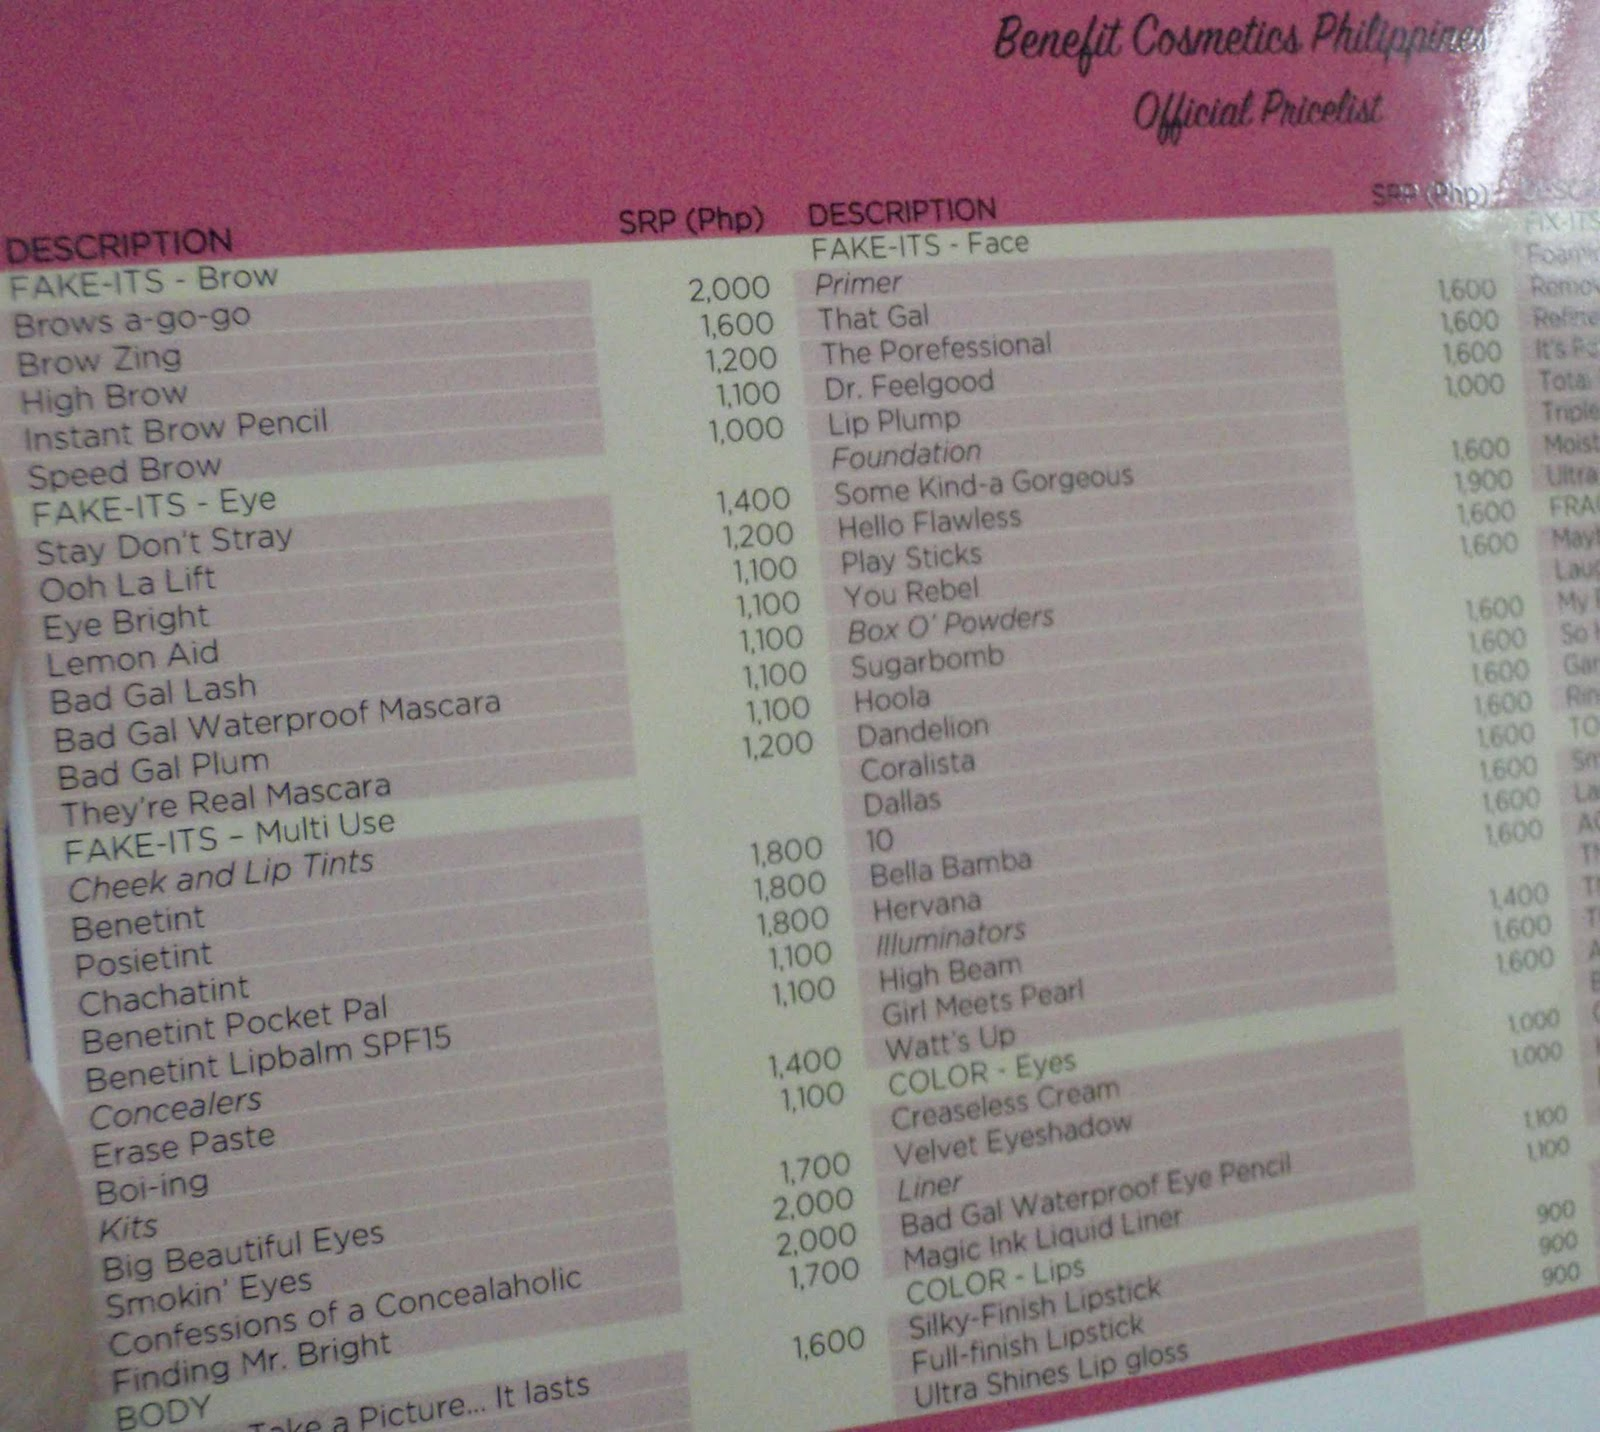 A sneak peek at benefit cosmetics philippines price list for Act point salon price